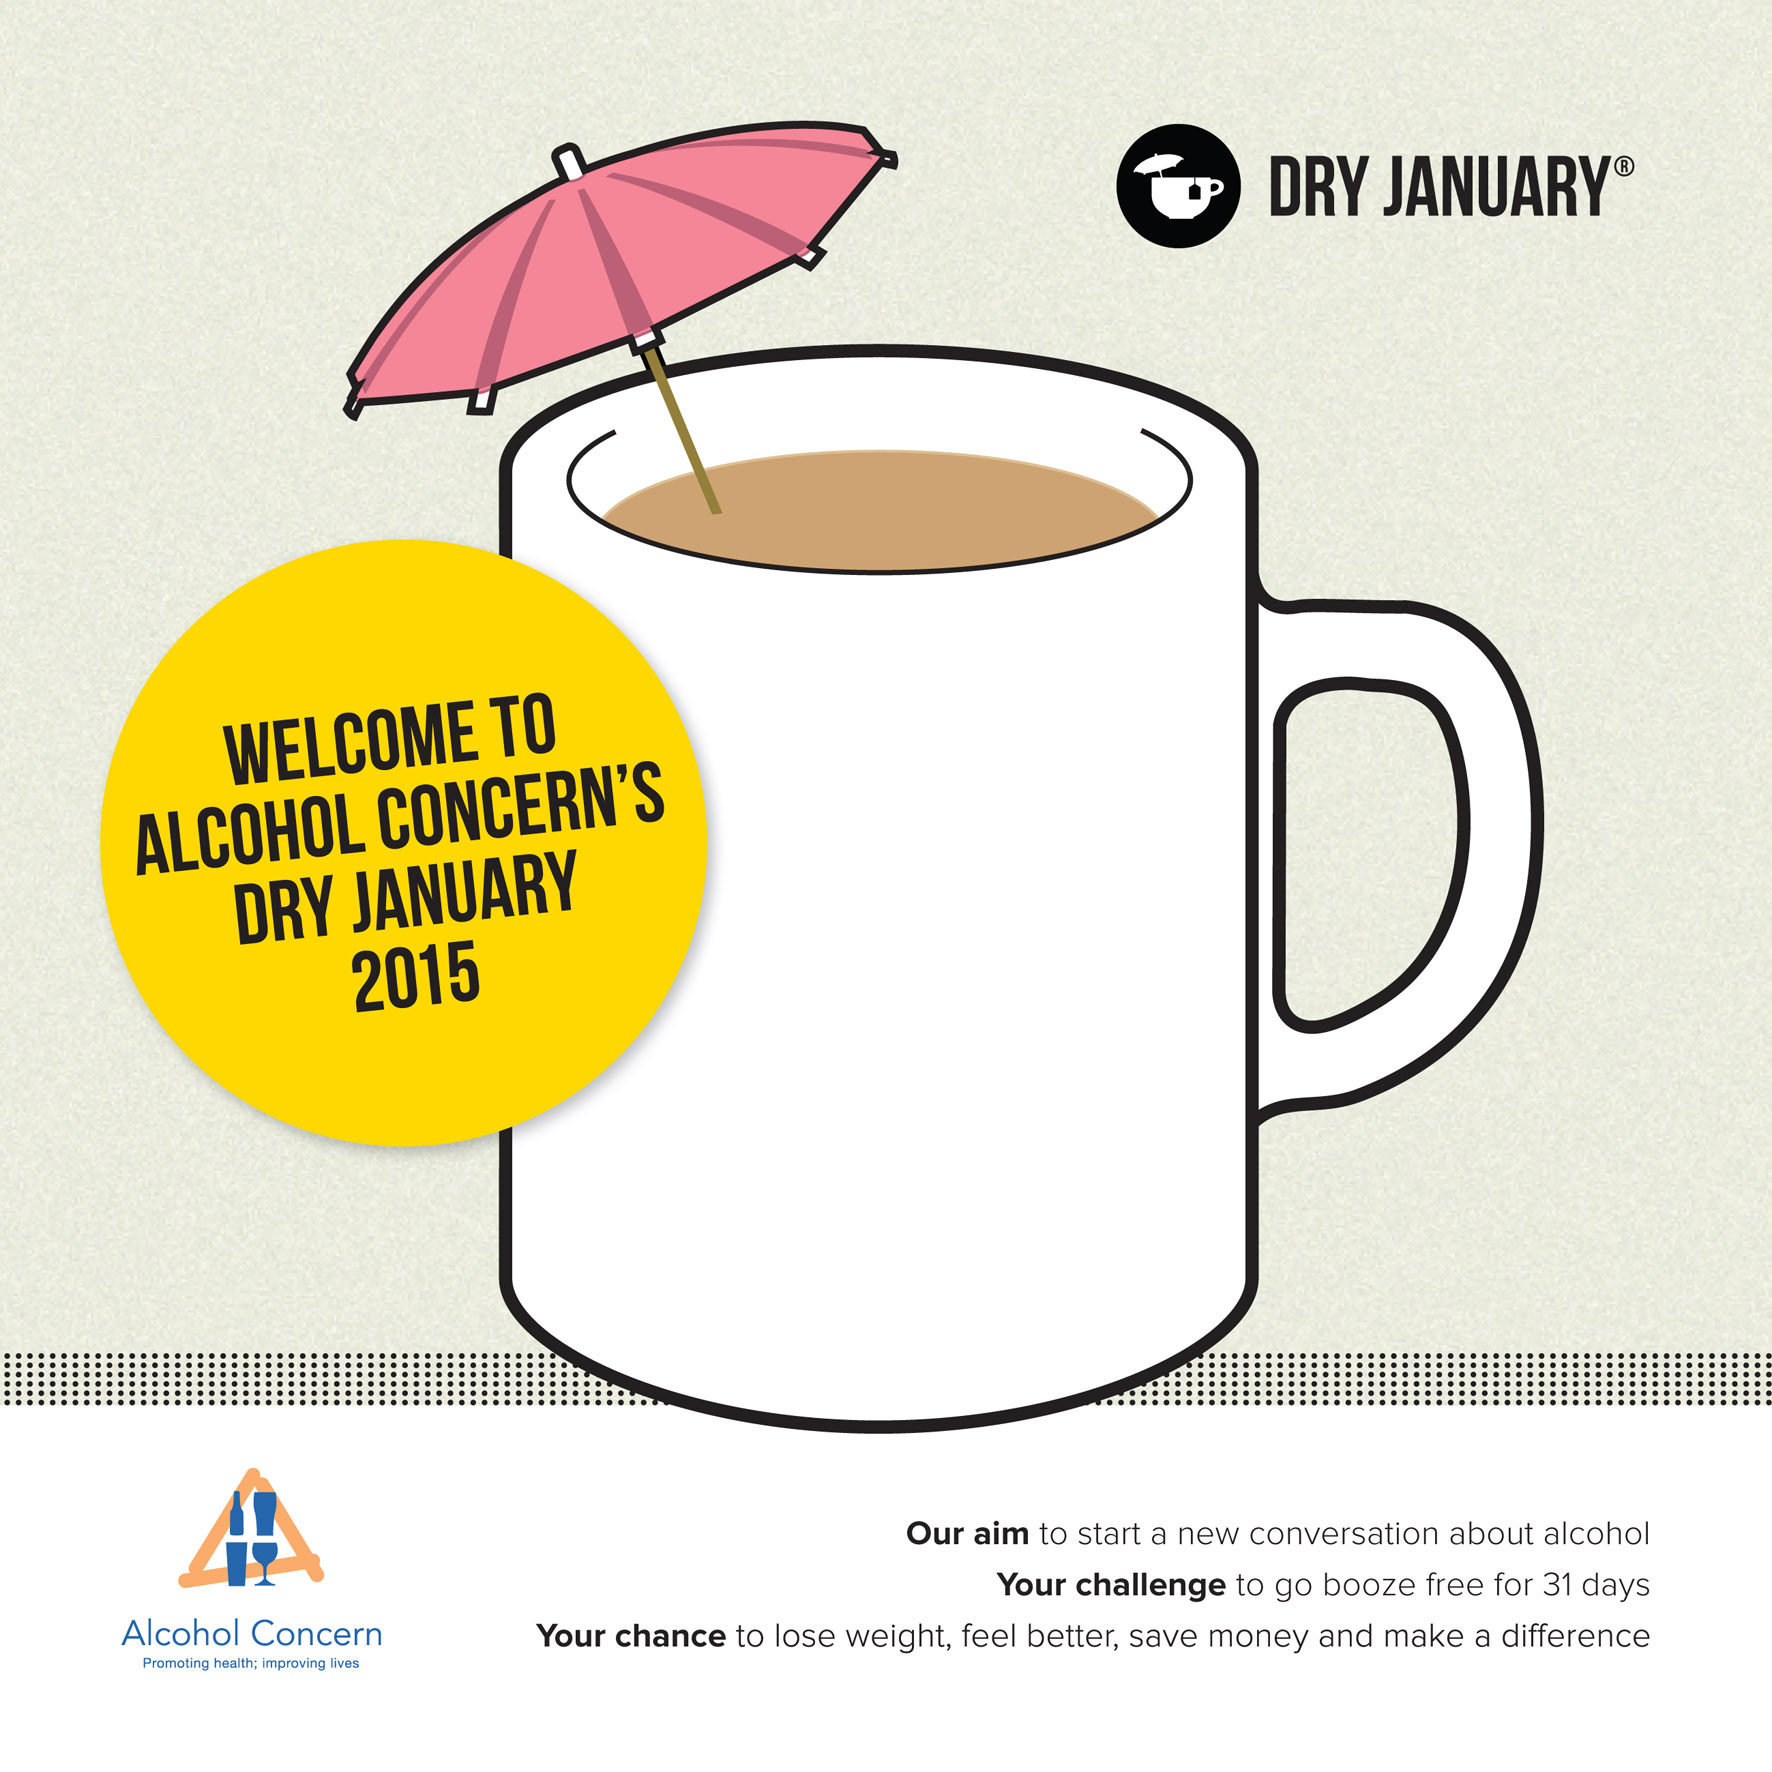 Can you do the Dry January challenge?